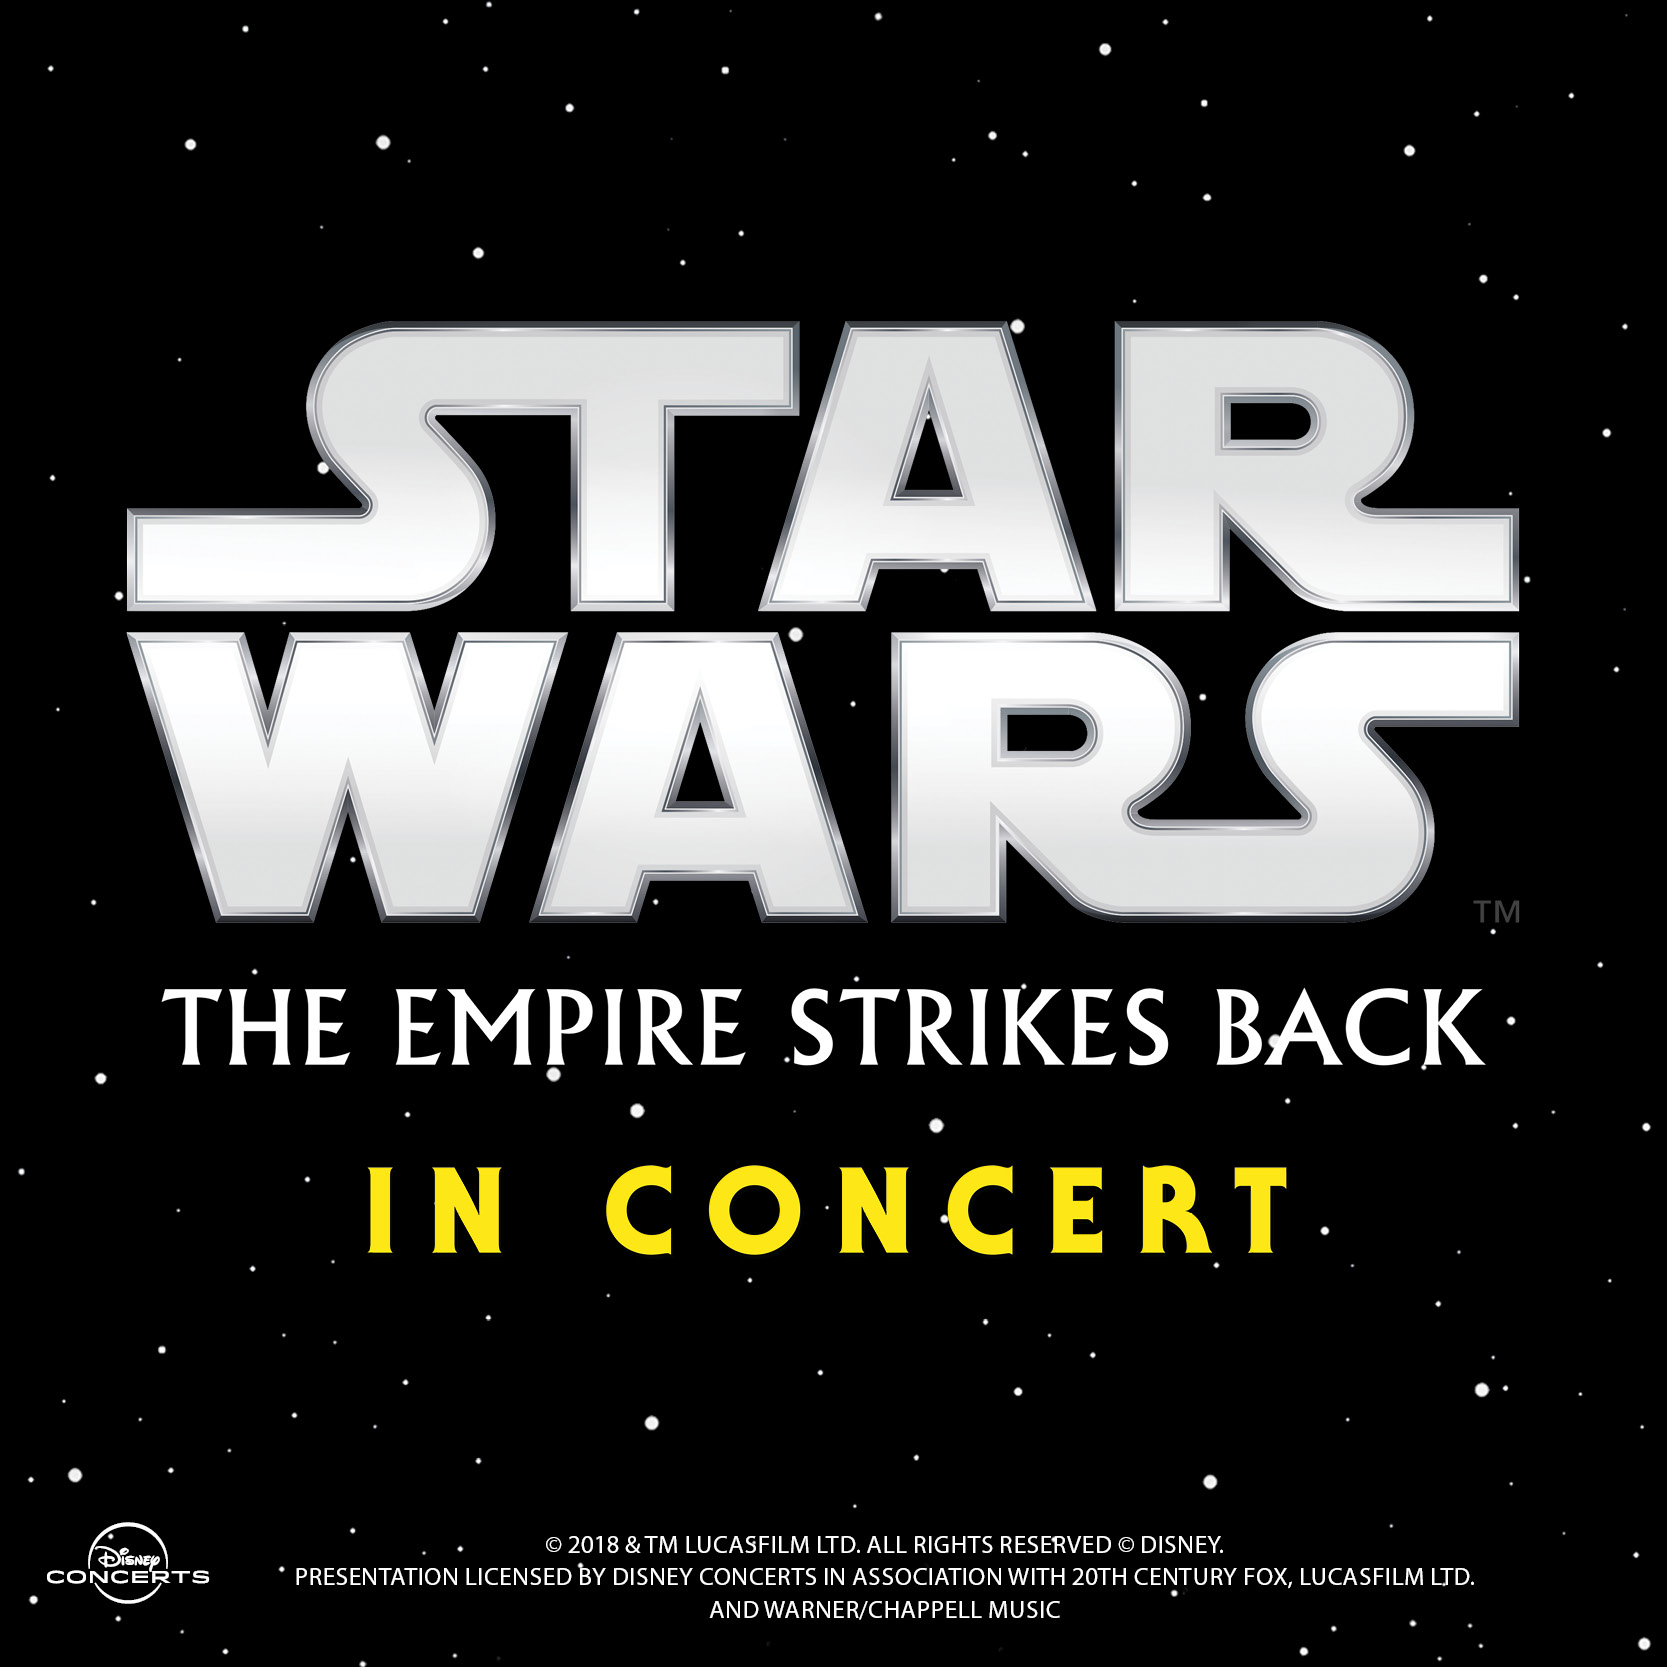 STAR WARS: FILM CONCERT SERIES - The Empire Strikes Back